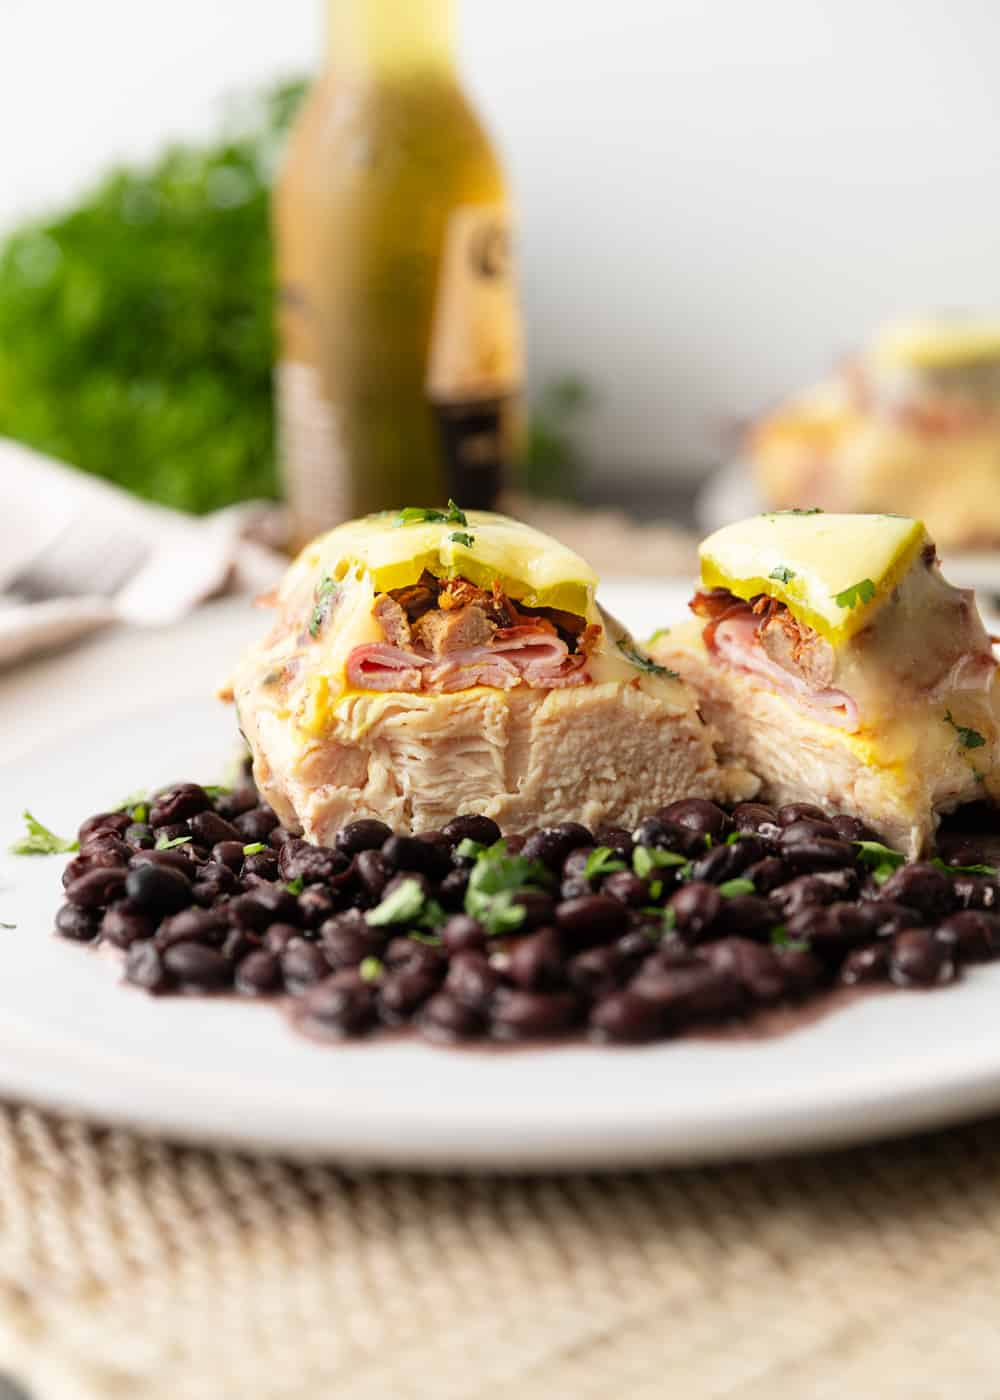 Baked Chicken Cubano on black beans